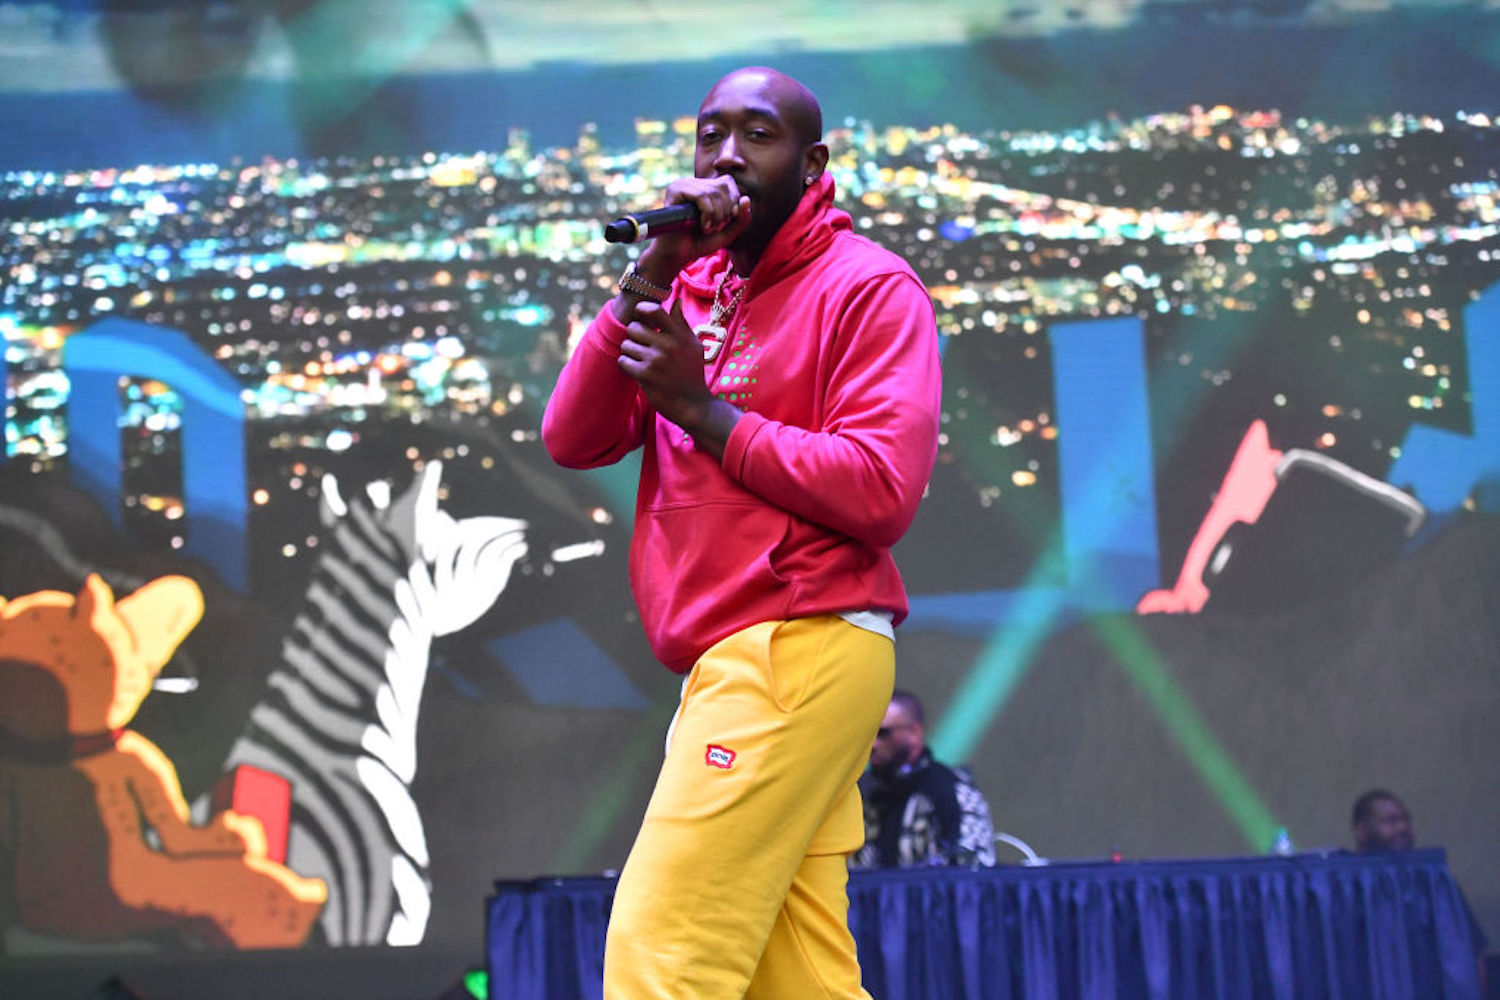 Freddie Gibbs Will Play A Rapper Turned Farmer In Film Debut 'Down With The King'